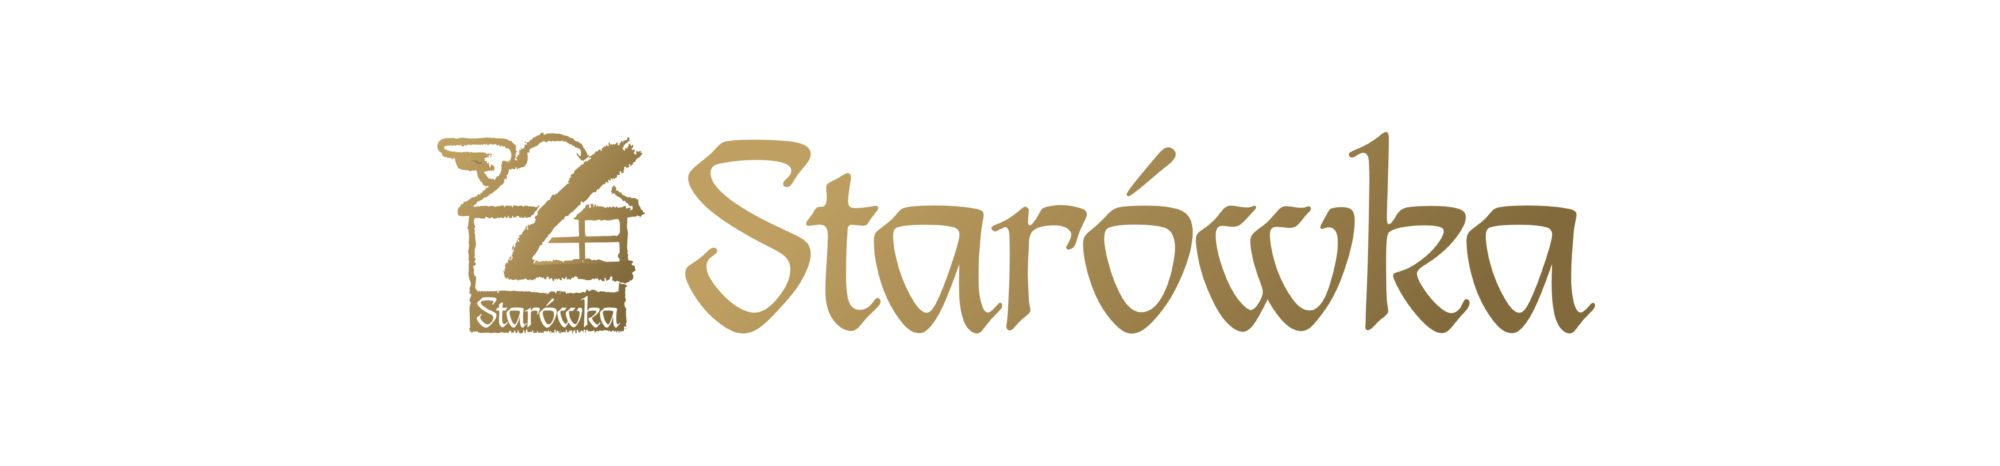 cropped-logo_starowka_end-1-1